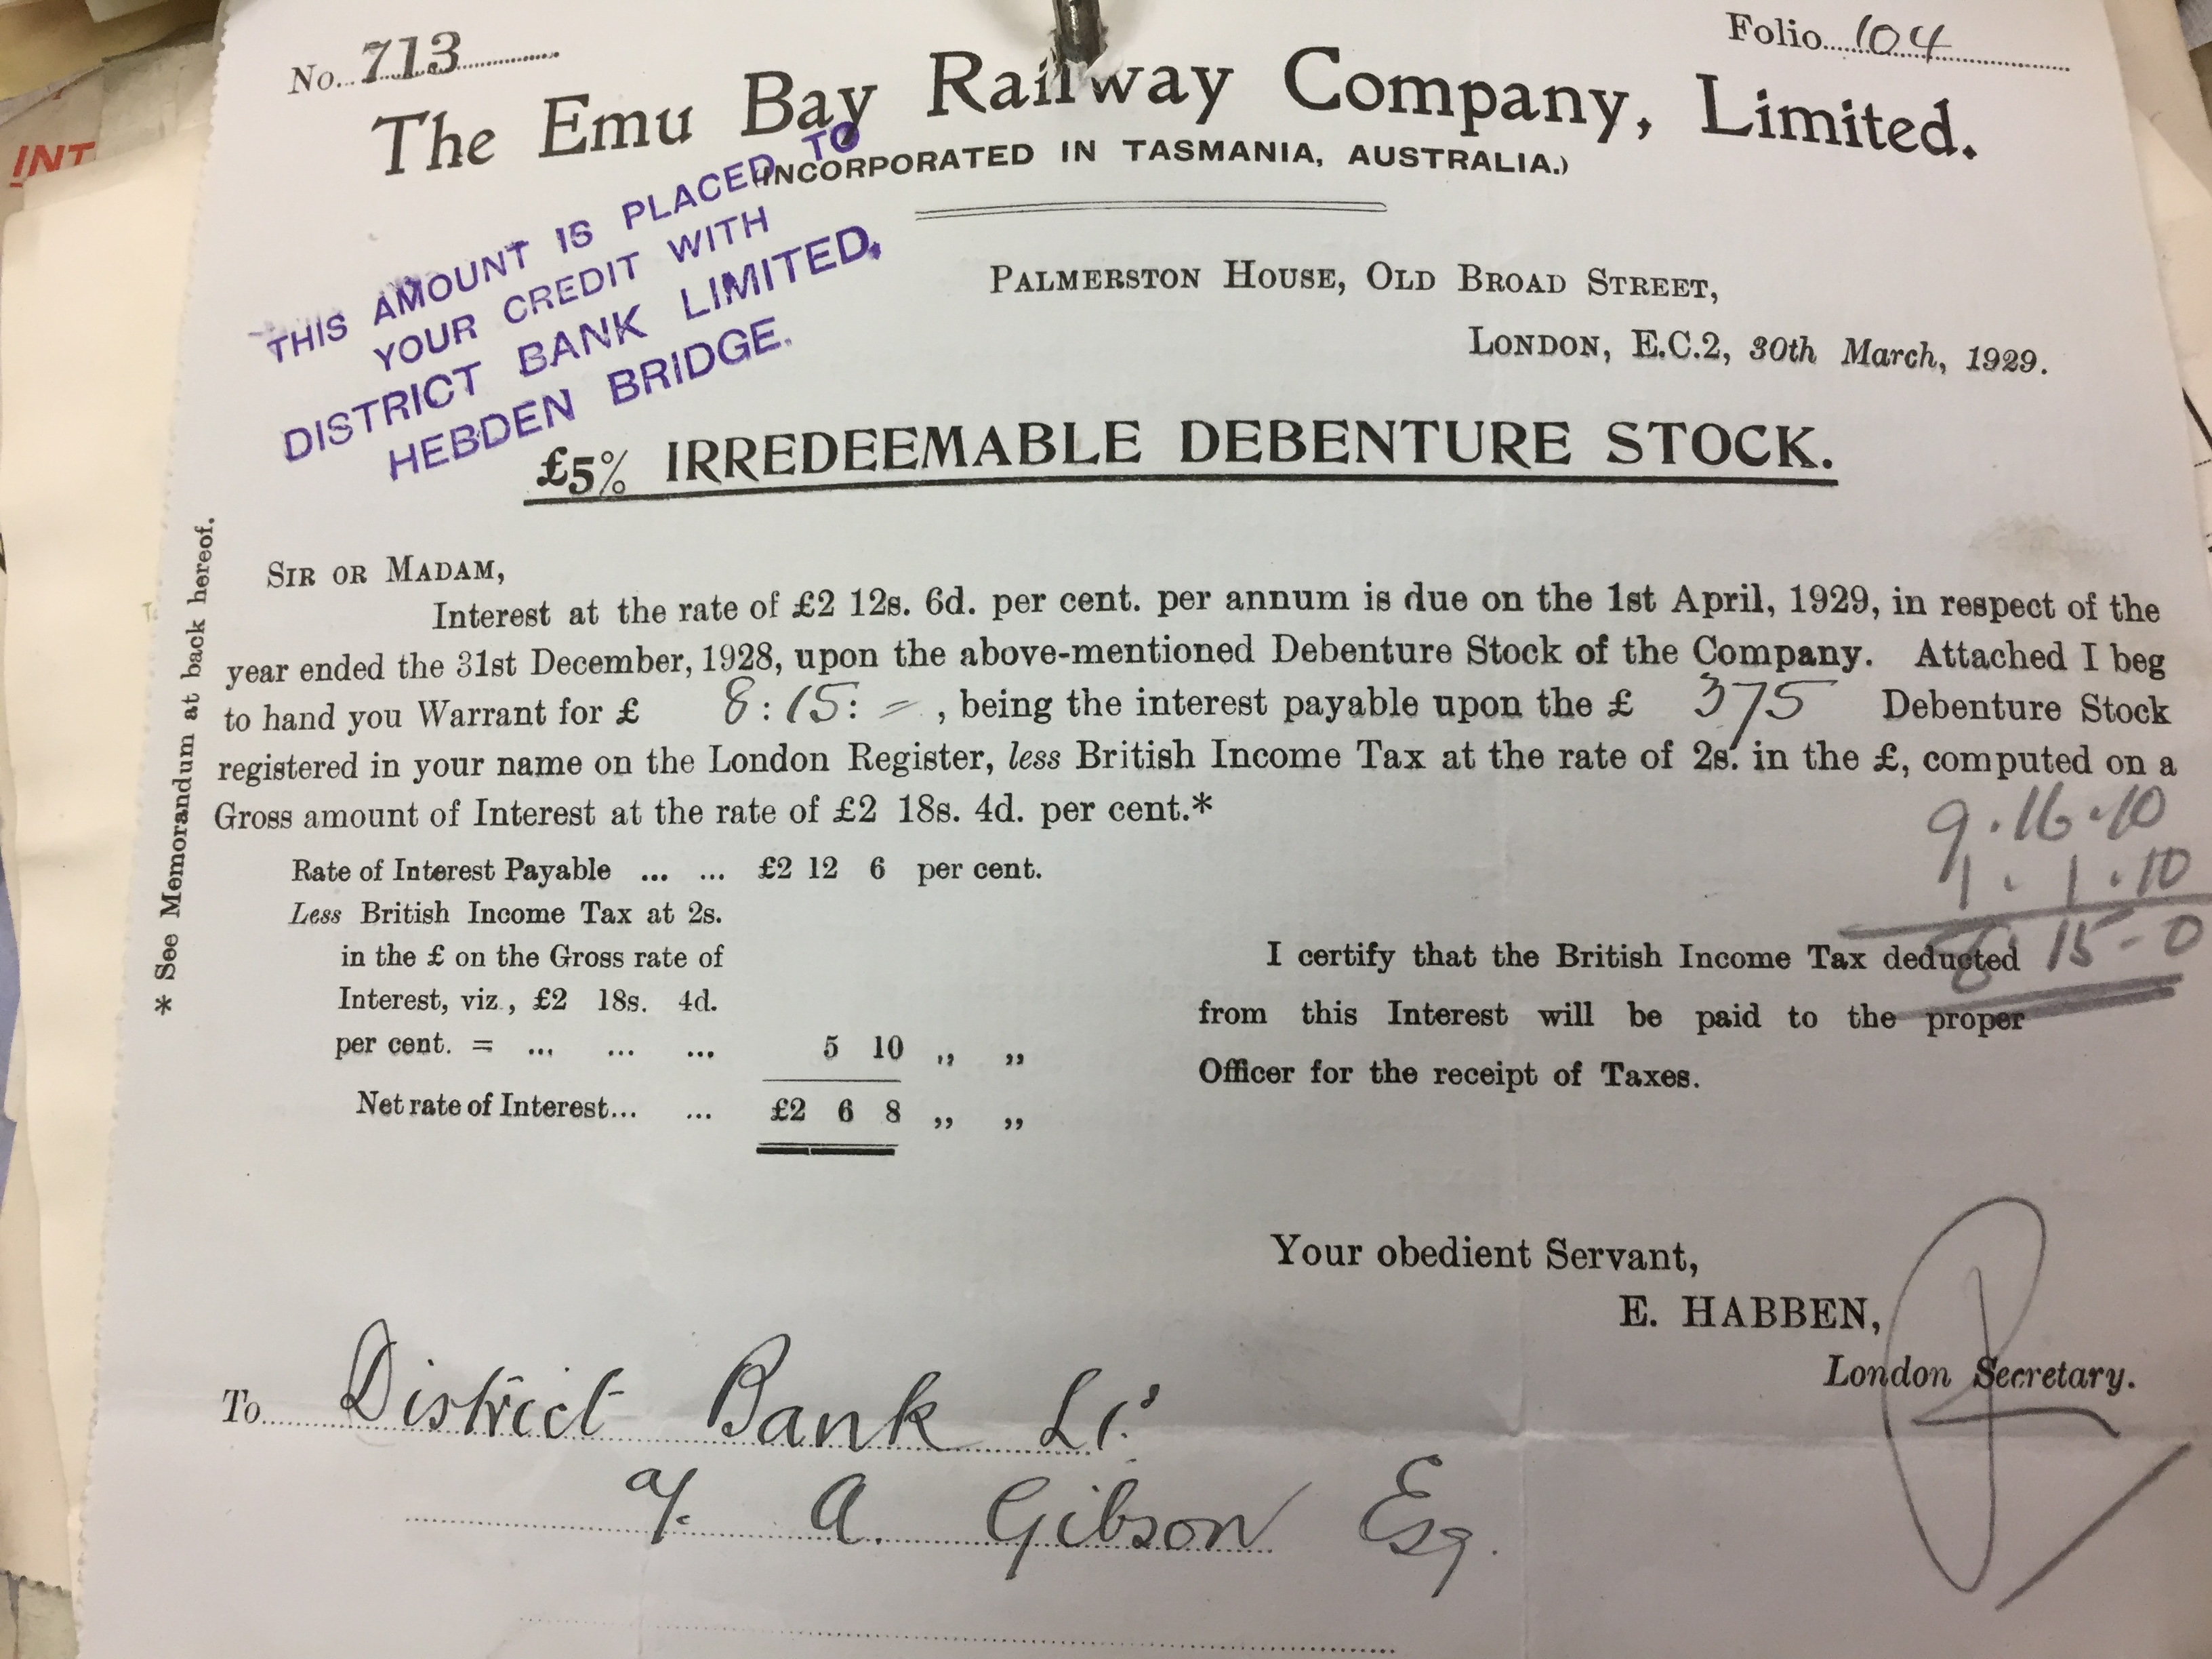 Gibson invested in Emu railroad Australia